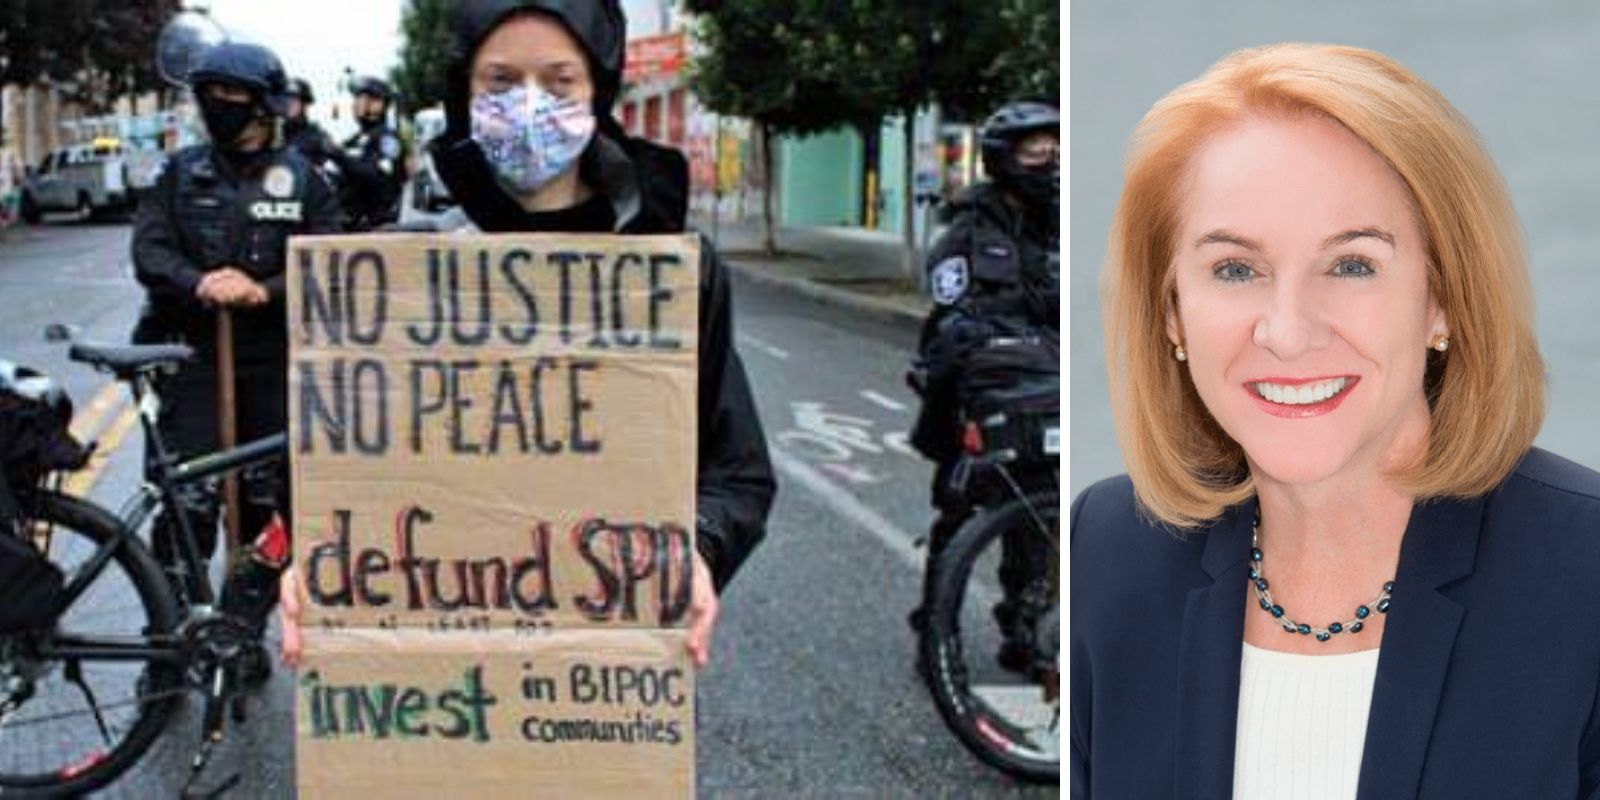 BREAKING: Seattle city council overrides mayor's veto—defunds police despite public objection